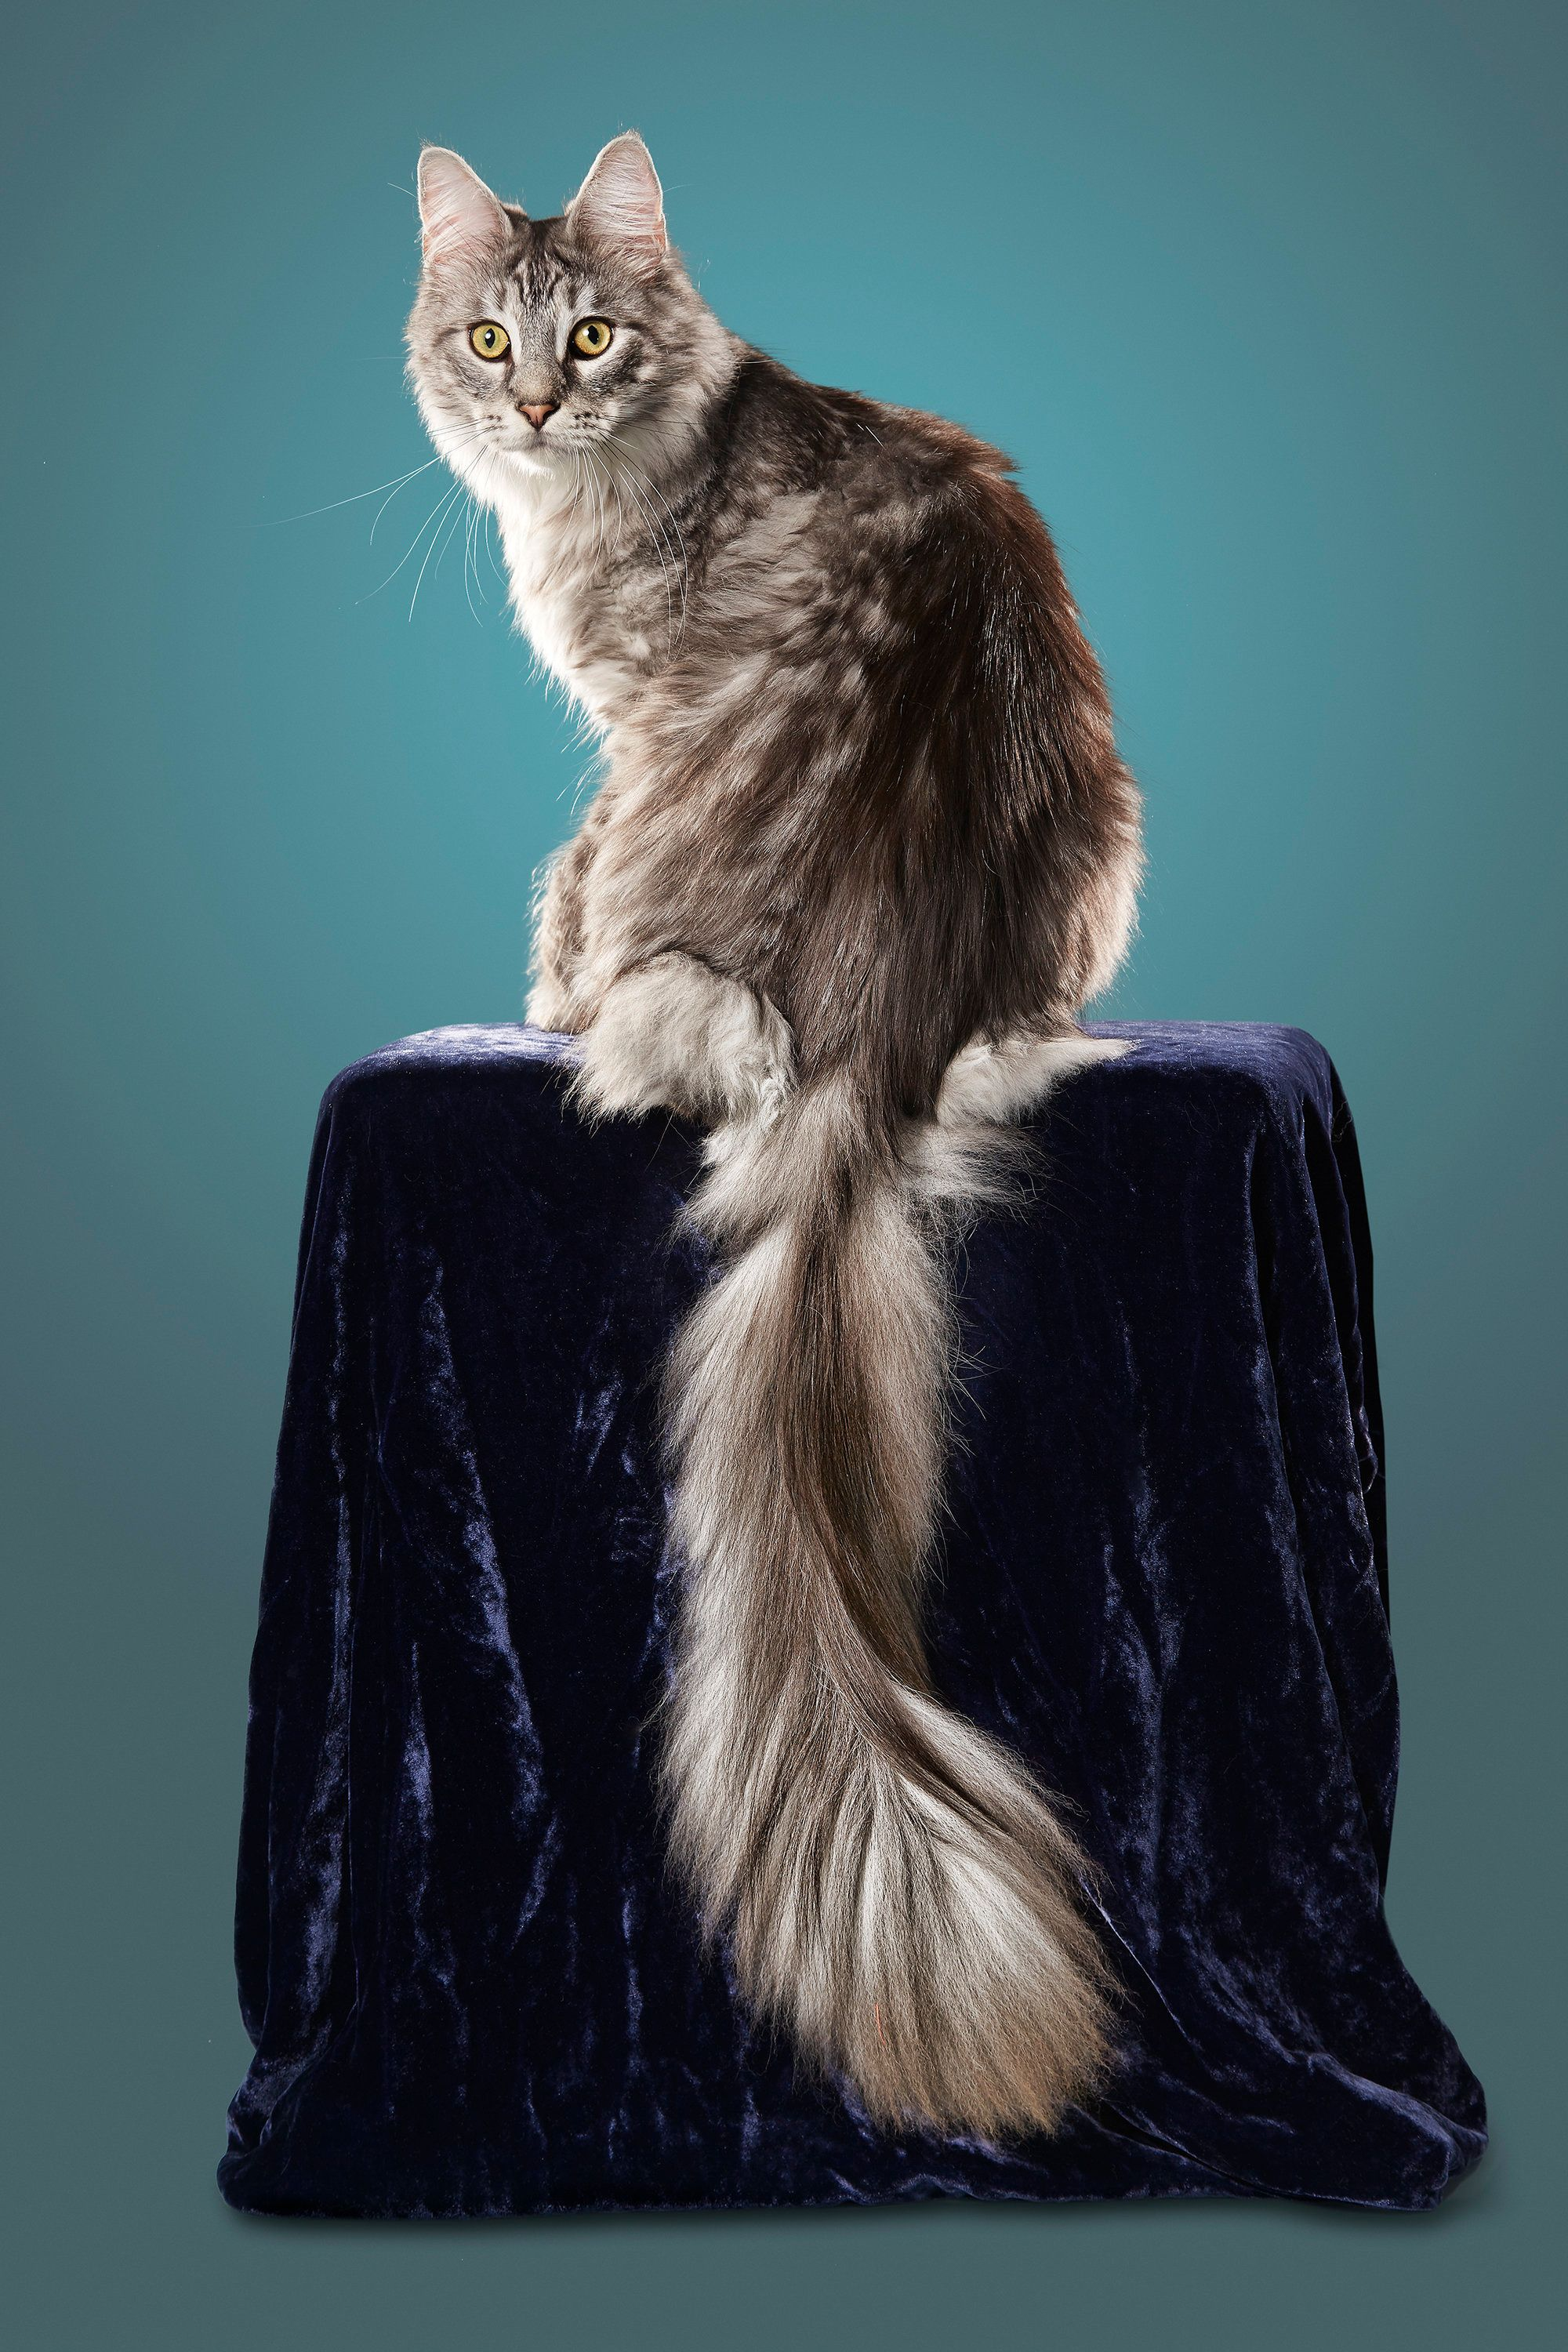 Merveilleux Cat With Longest Tail. Cygnus, A Maine Coon In Ferndale, Michigan, Has A  Tail Measuring 17.58 Inches. Kevin Scott Ramos/Guinness World Records